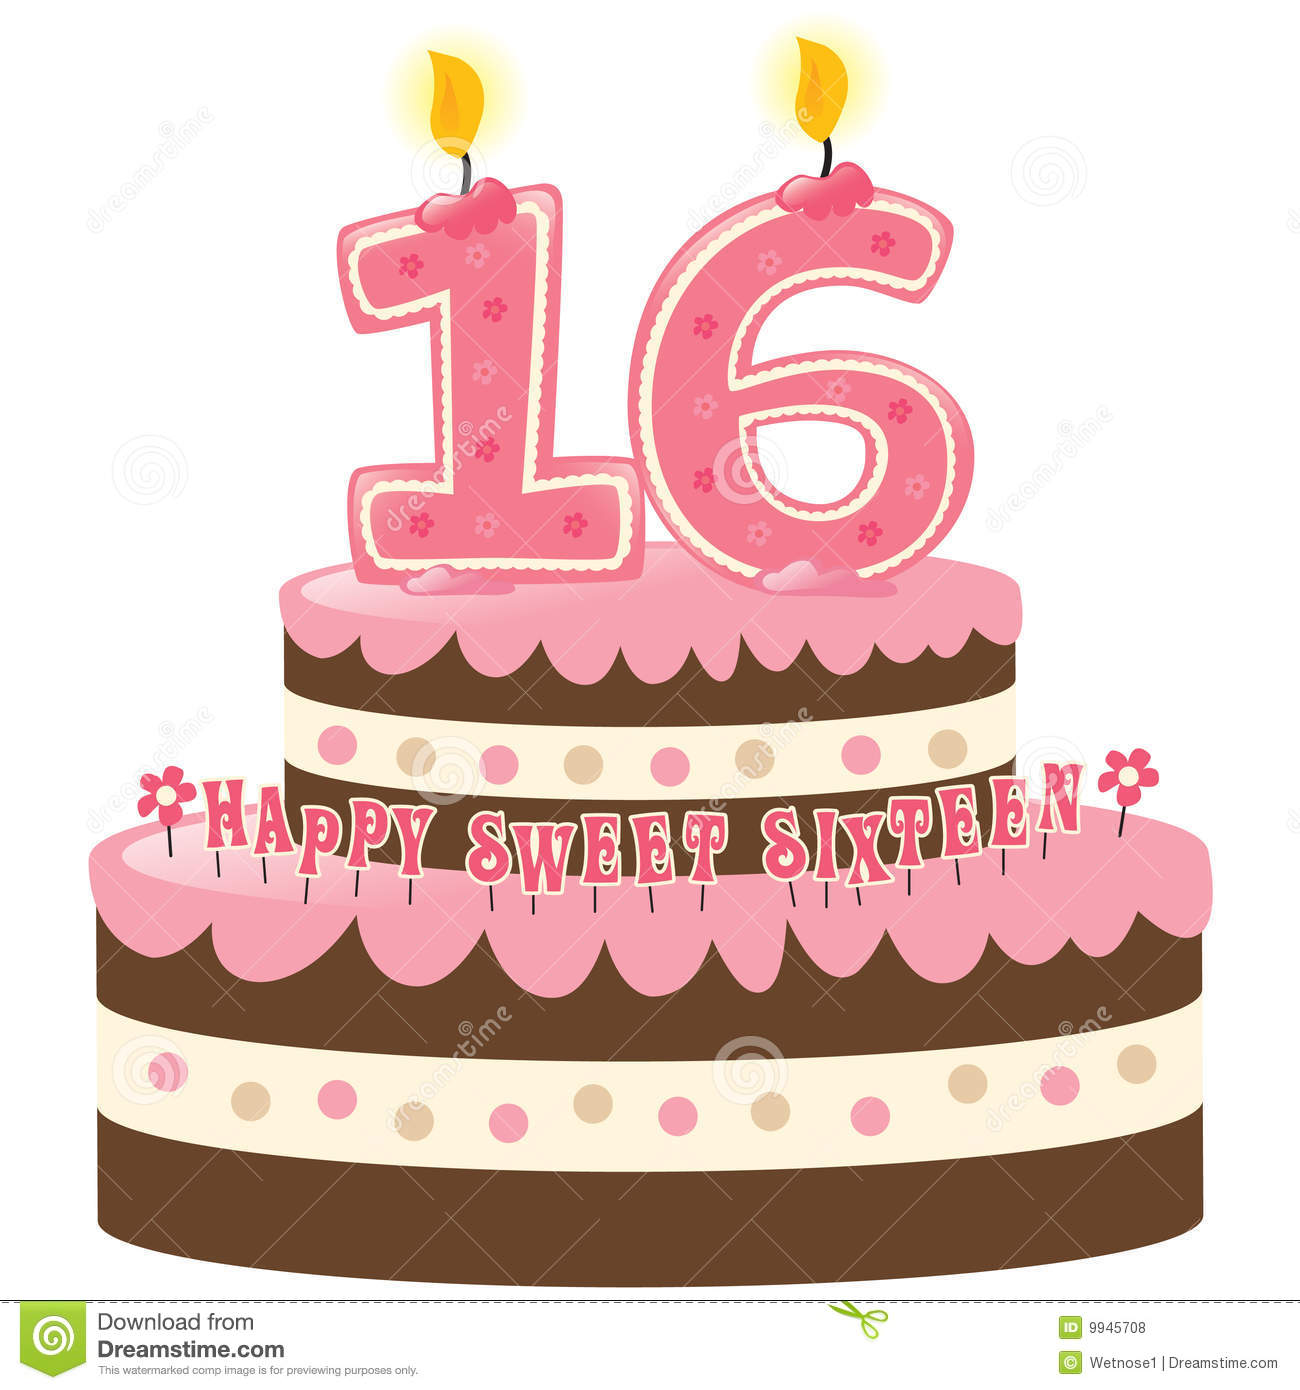 Sweet Sixteen Birthday Cake Royalty Free Stock Photos Image 9945708